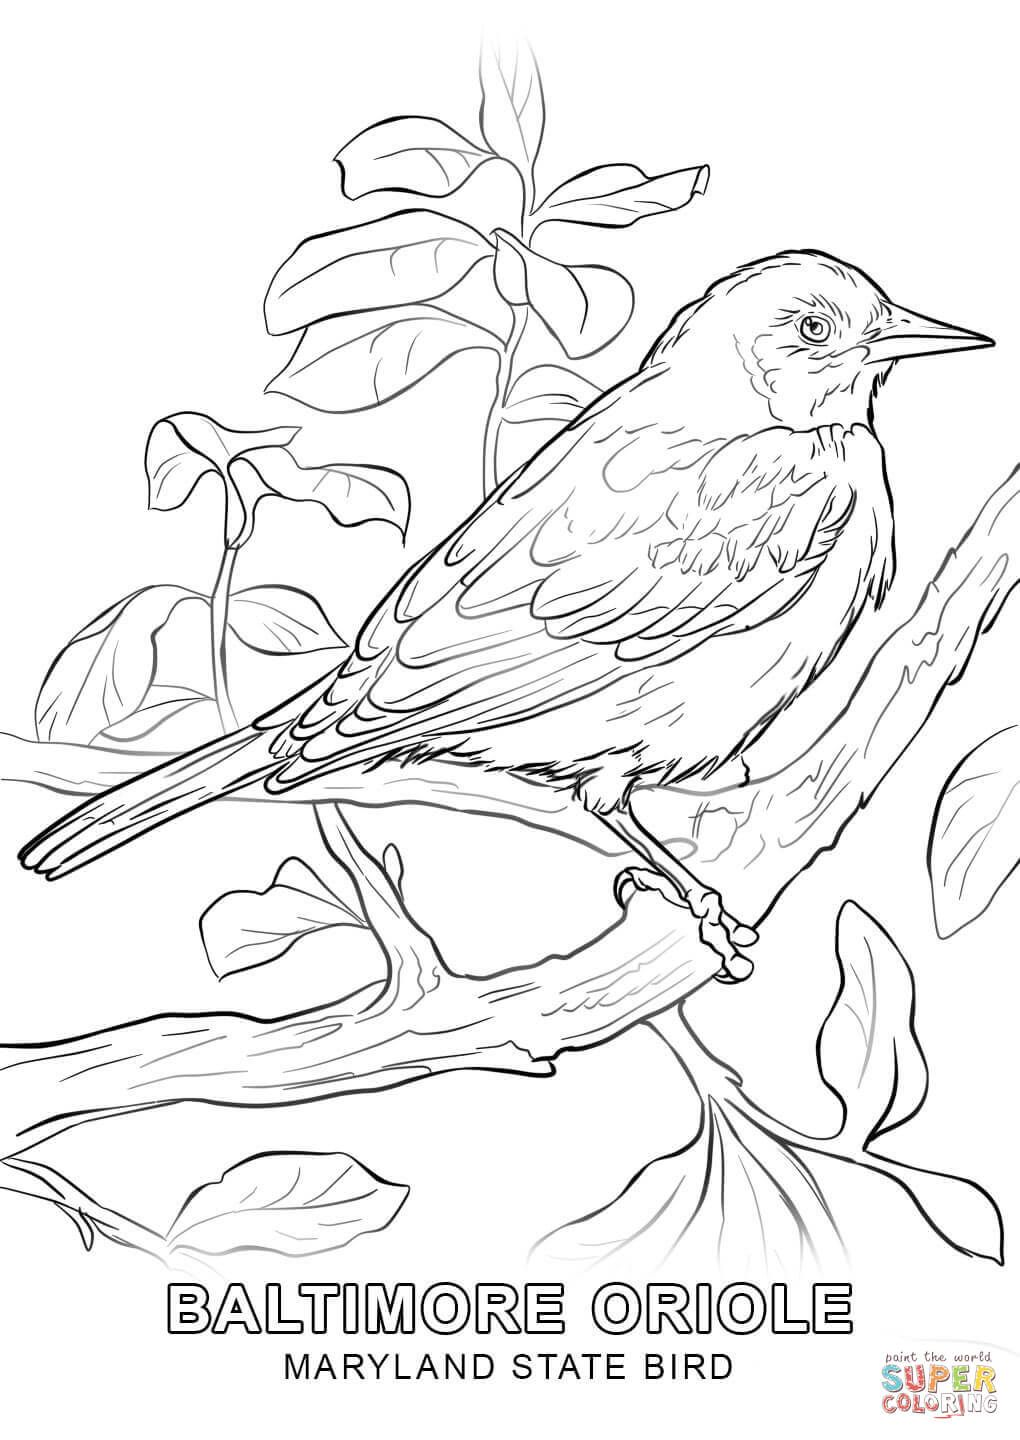 Maryland State Bird Coloring Page Jpg 1020 1440 Baseball